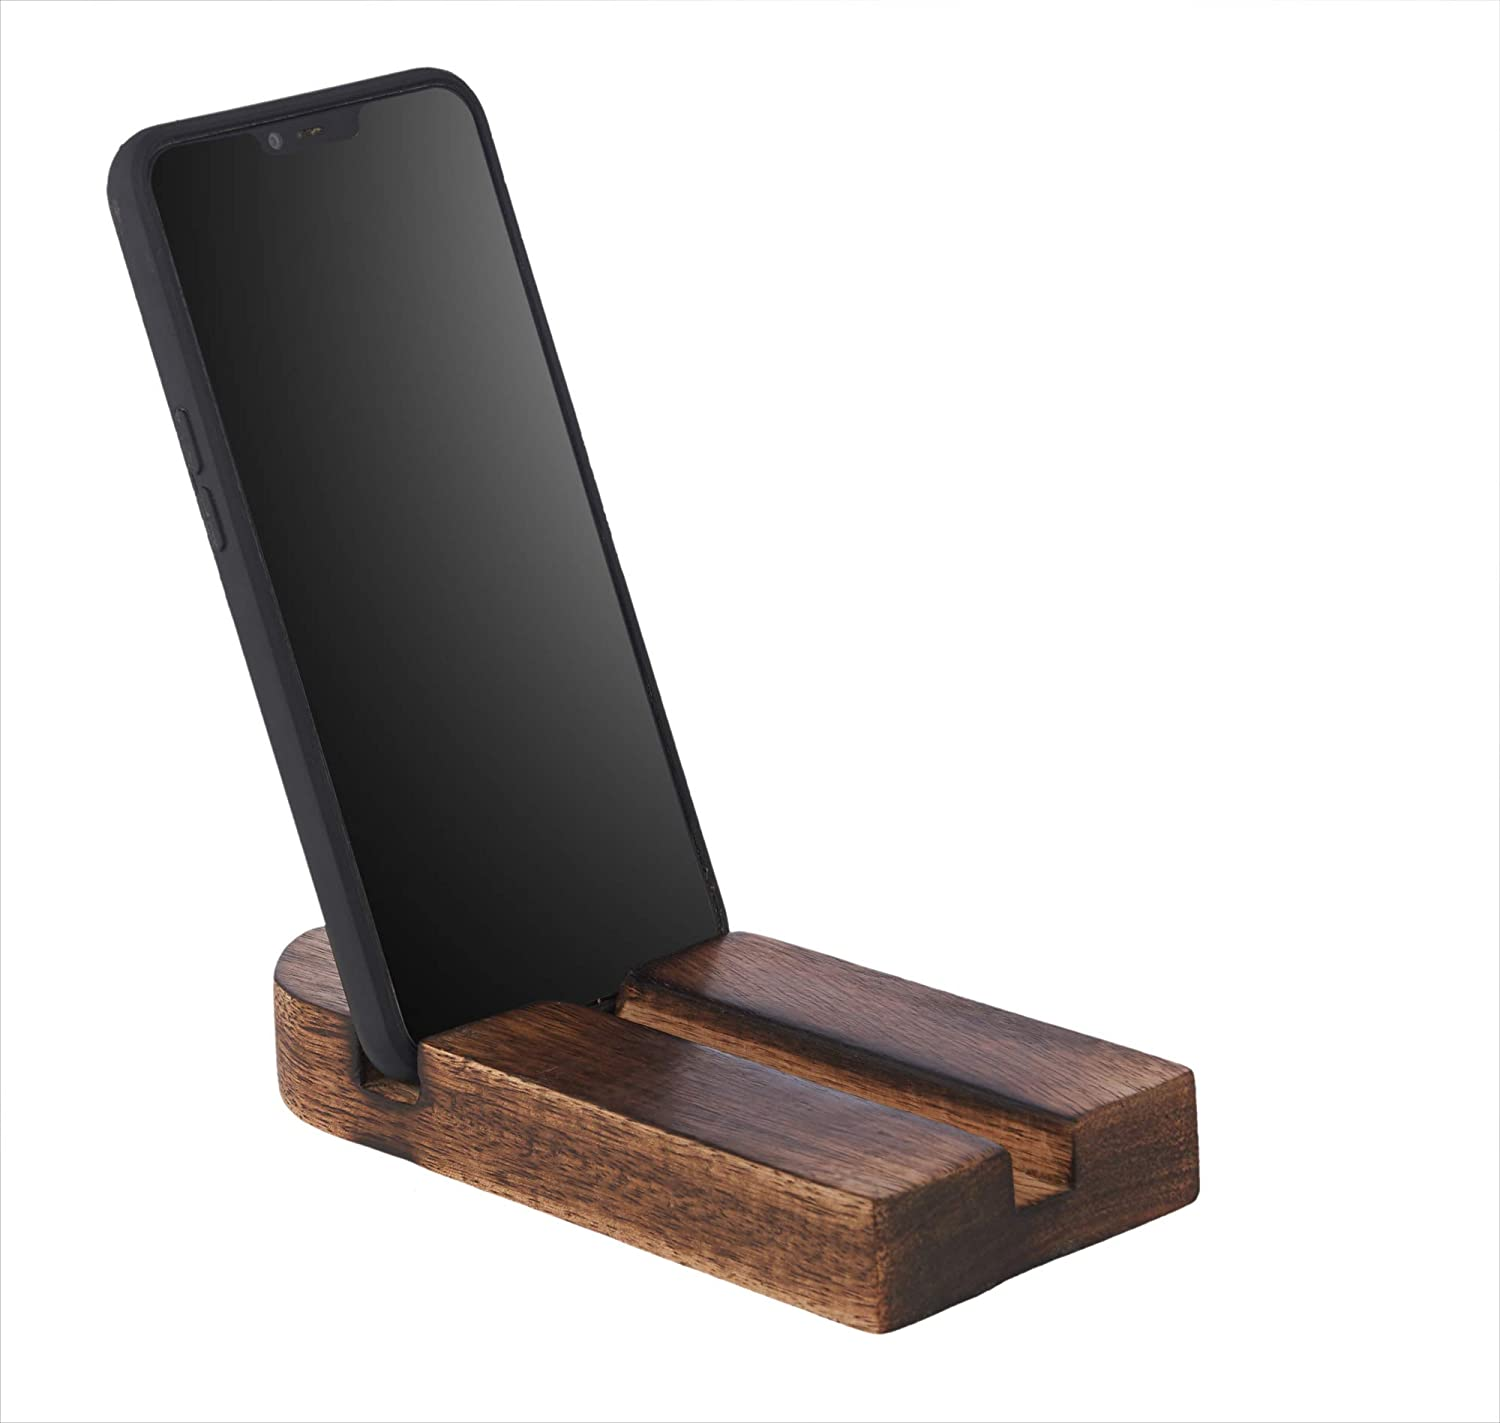 Horizontal /& Vertical Compatible for All Android Smartphone Wooden Cross Shaped Handy Desktop Universal Mobile Holder Ancient Handicraft Wood Cell Phone Mobile Smartphone Stand Holder iPhone